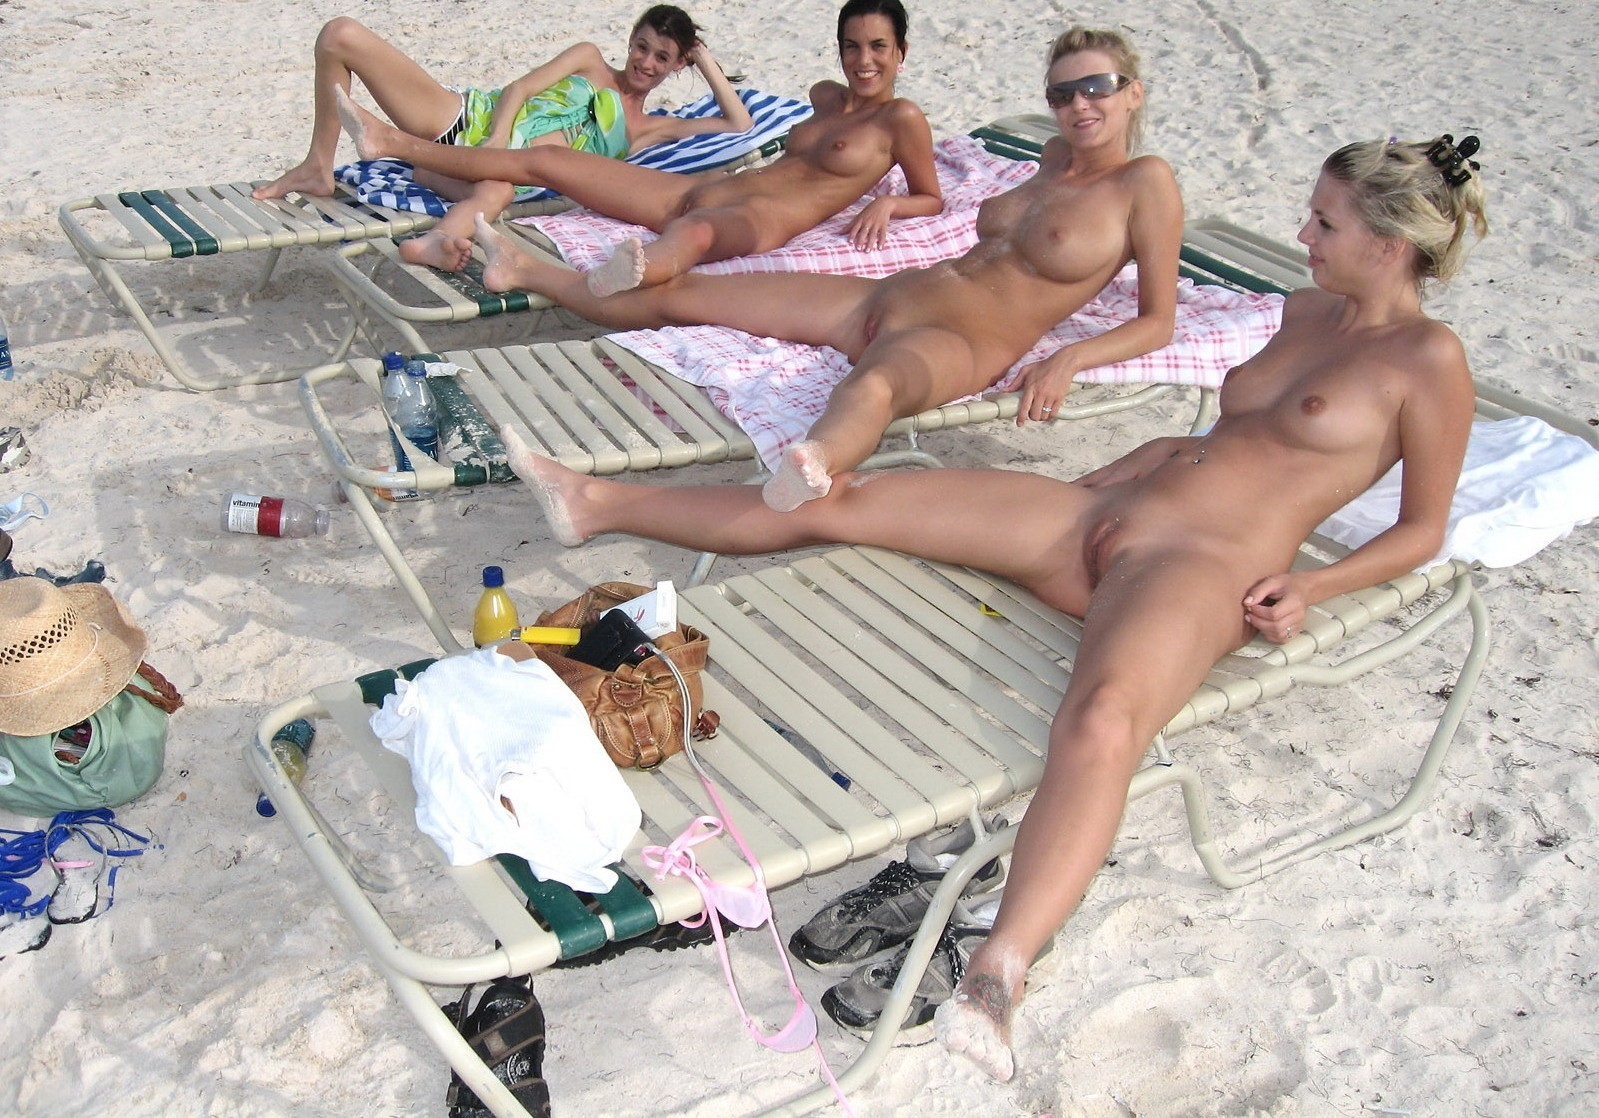 ON-THE-BEACH-amateur-flashing-voyeur-flash-public-1.jpg ...